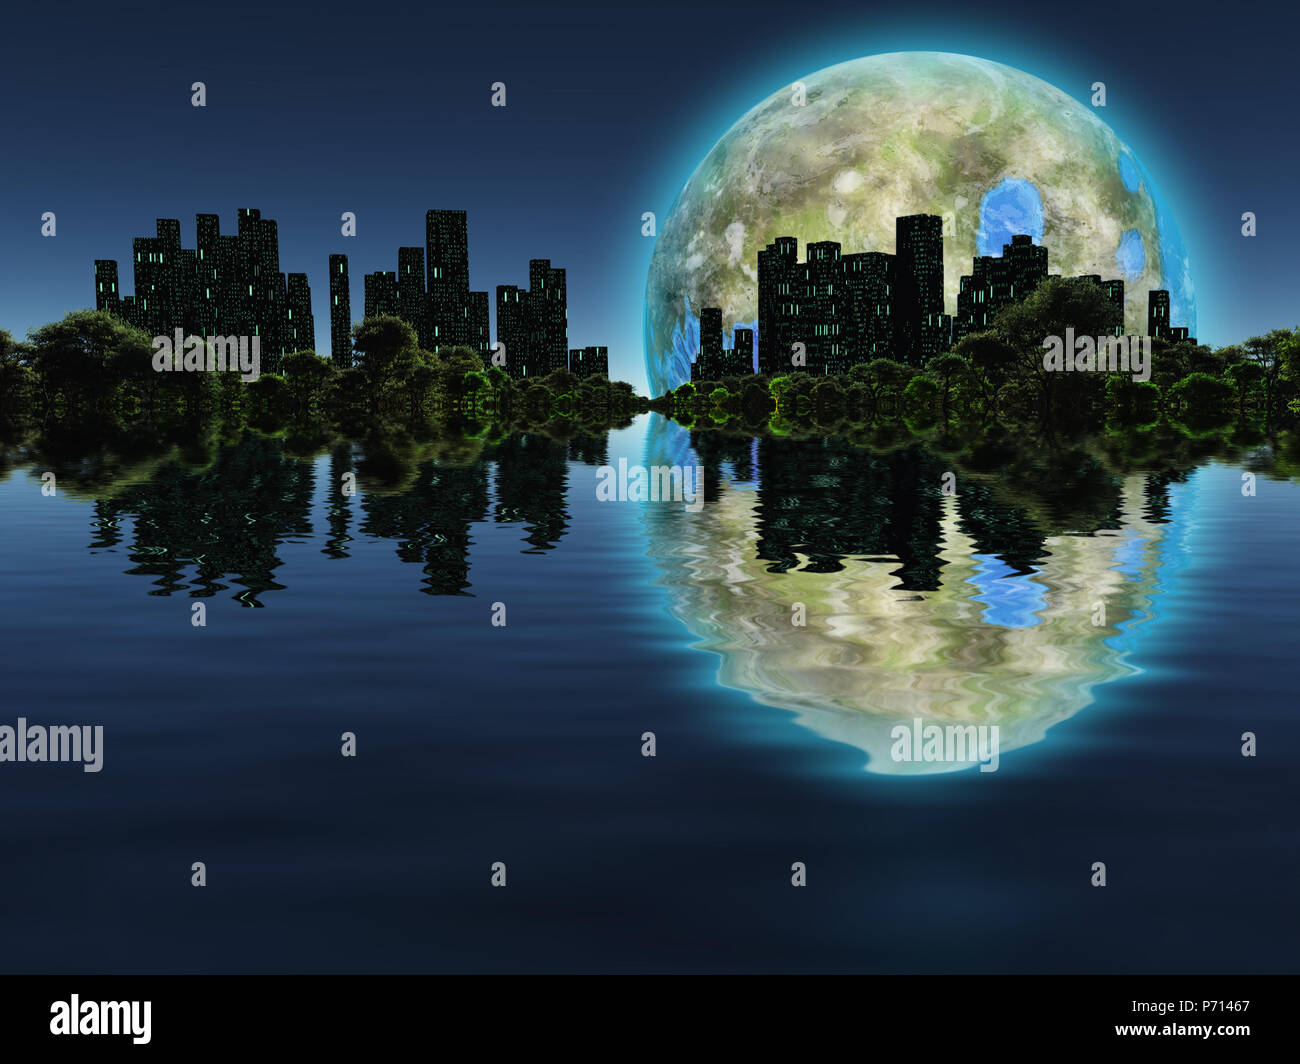 Surreal digital art. Future city with green trees on a water surface. Giant terraformed moon in the sky. - Stock Image